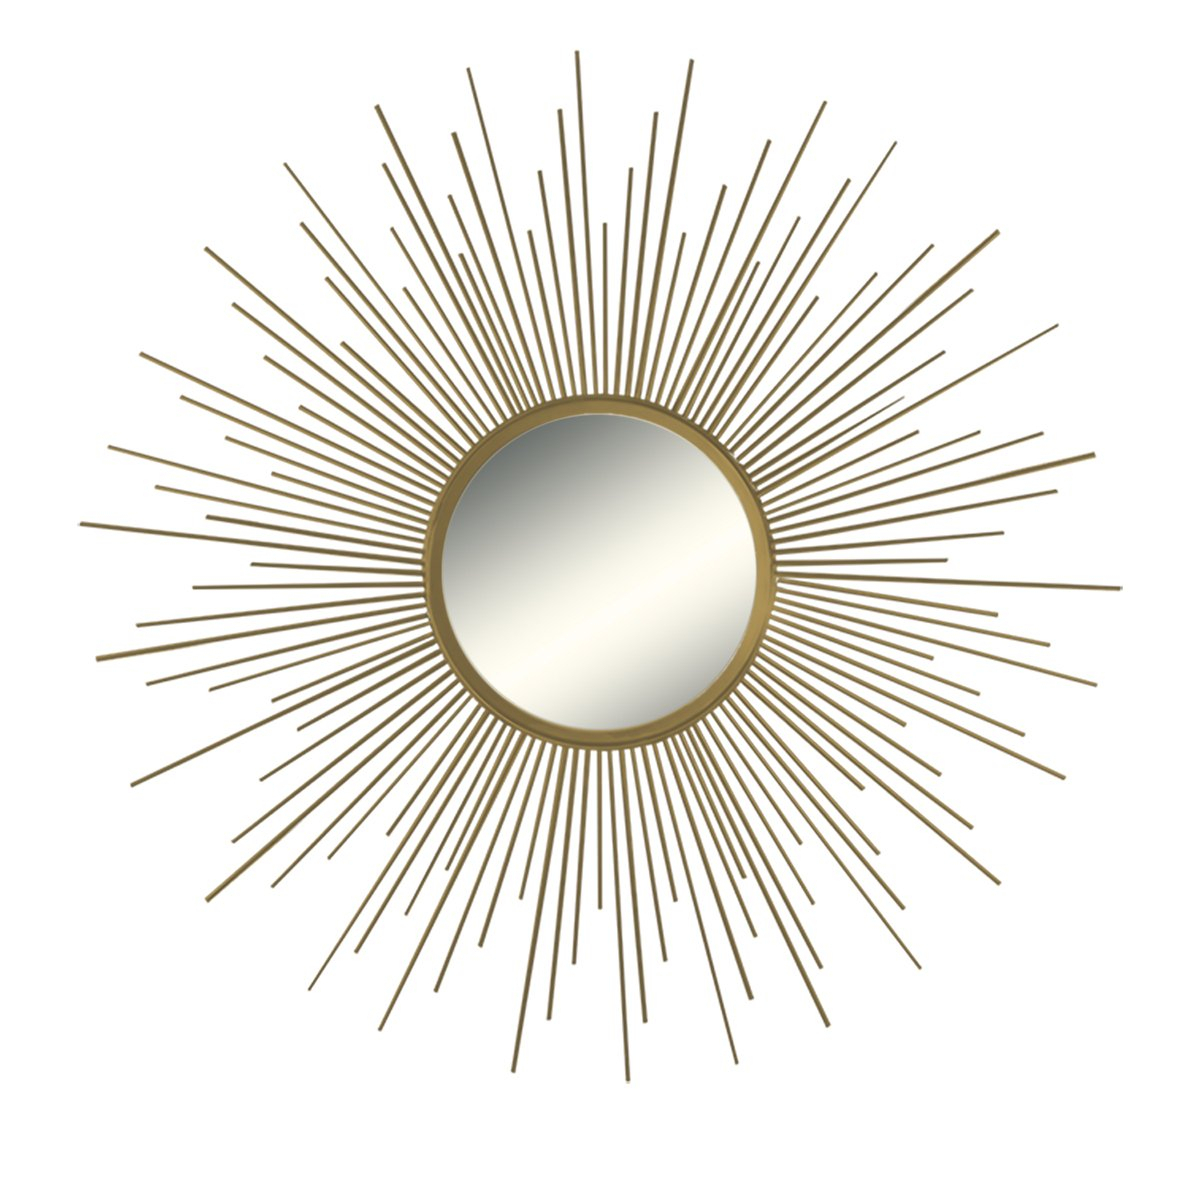 Buy Decorative Wall Mirror Round Shape Kentwood Collection Within Kentwood Round Wall Mirrors (View 13 of 20)